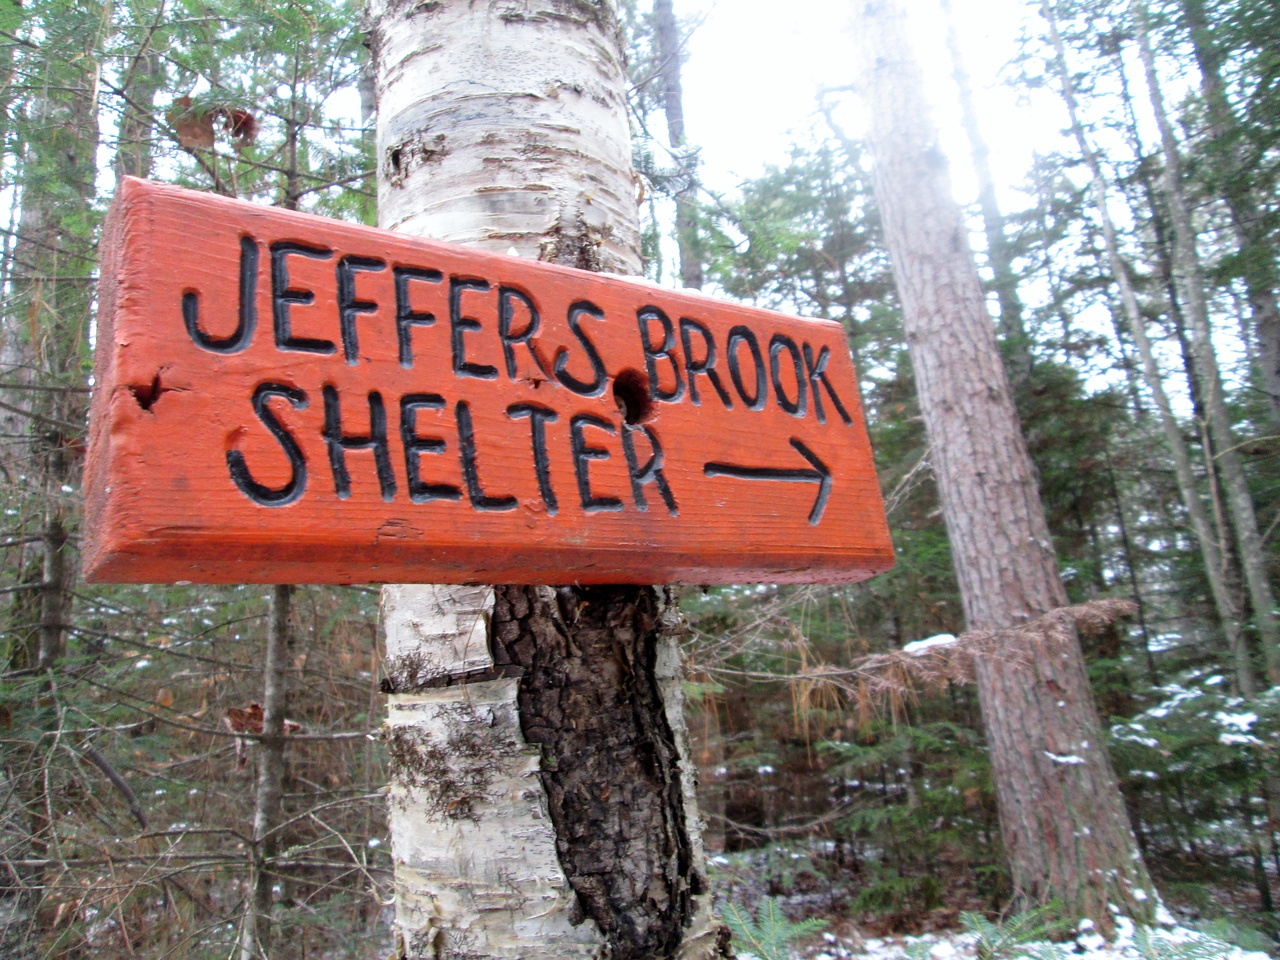 I wasn't sure if I visited the shelter the last time I hiked this section (10 years ago) so we made a quick visit.